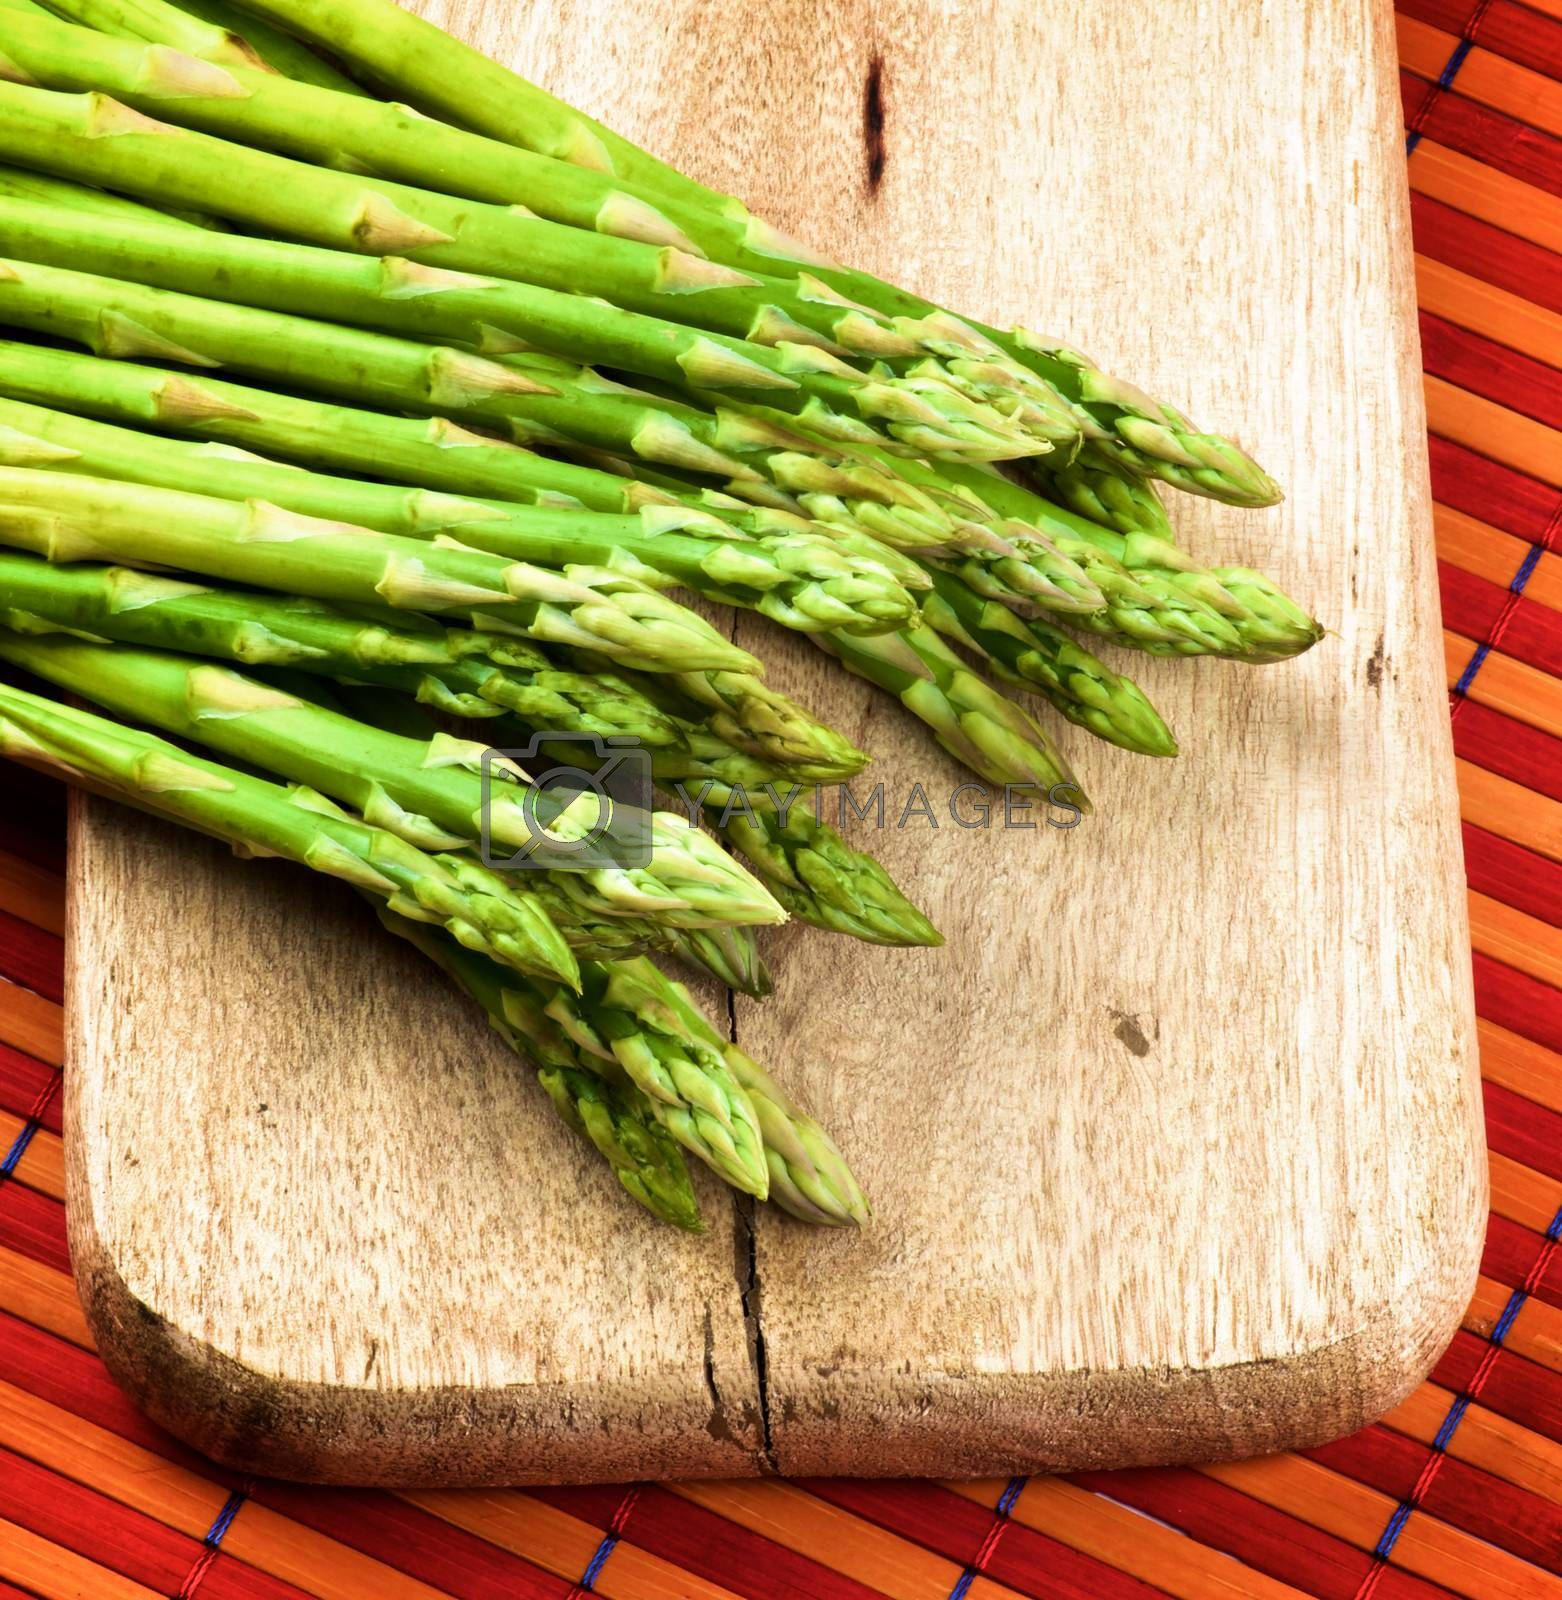 Arrangement of Fresh Raw Asparagus Sprouts on Wooden Cutting Board closeup on Orange Strawmat background